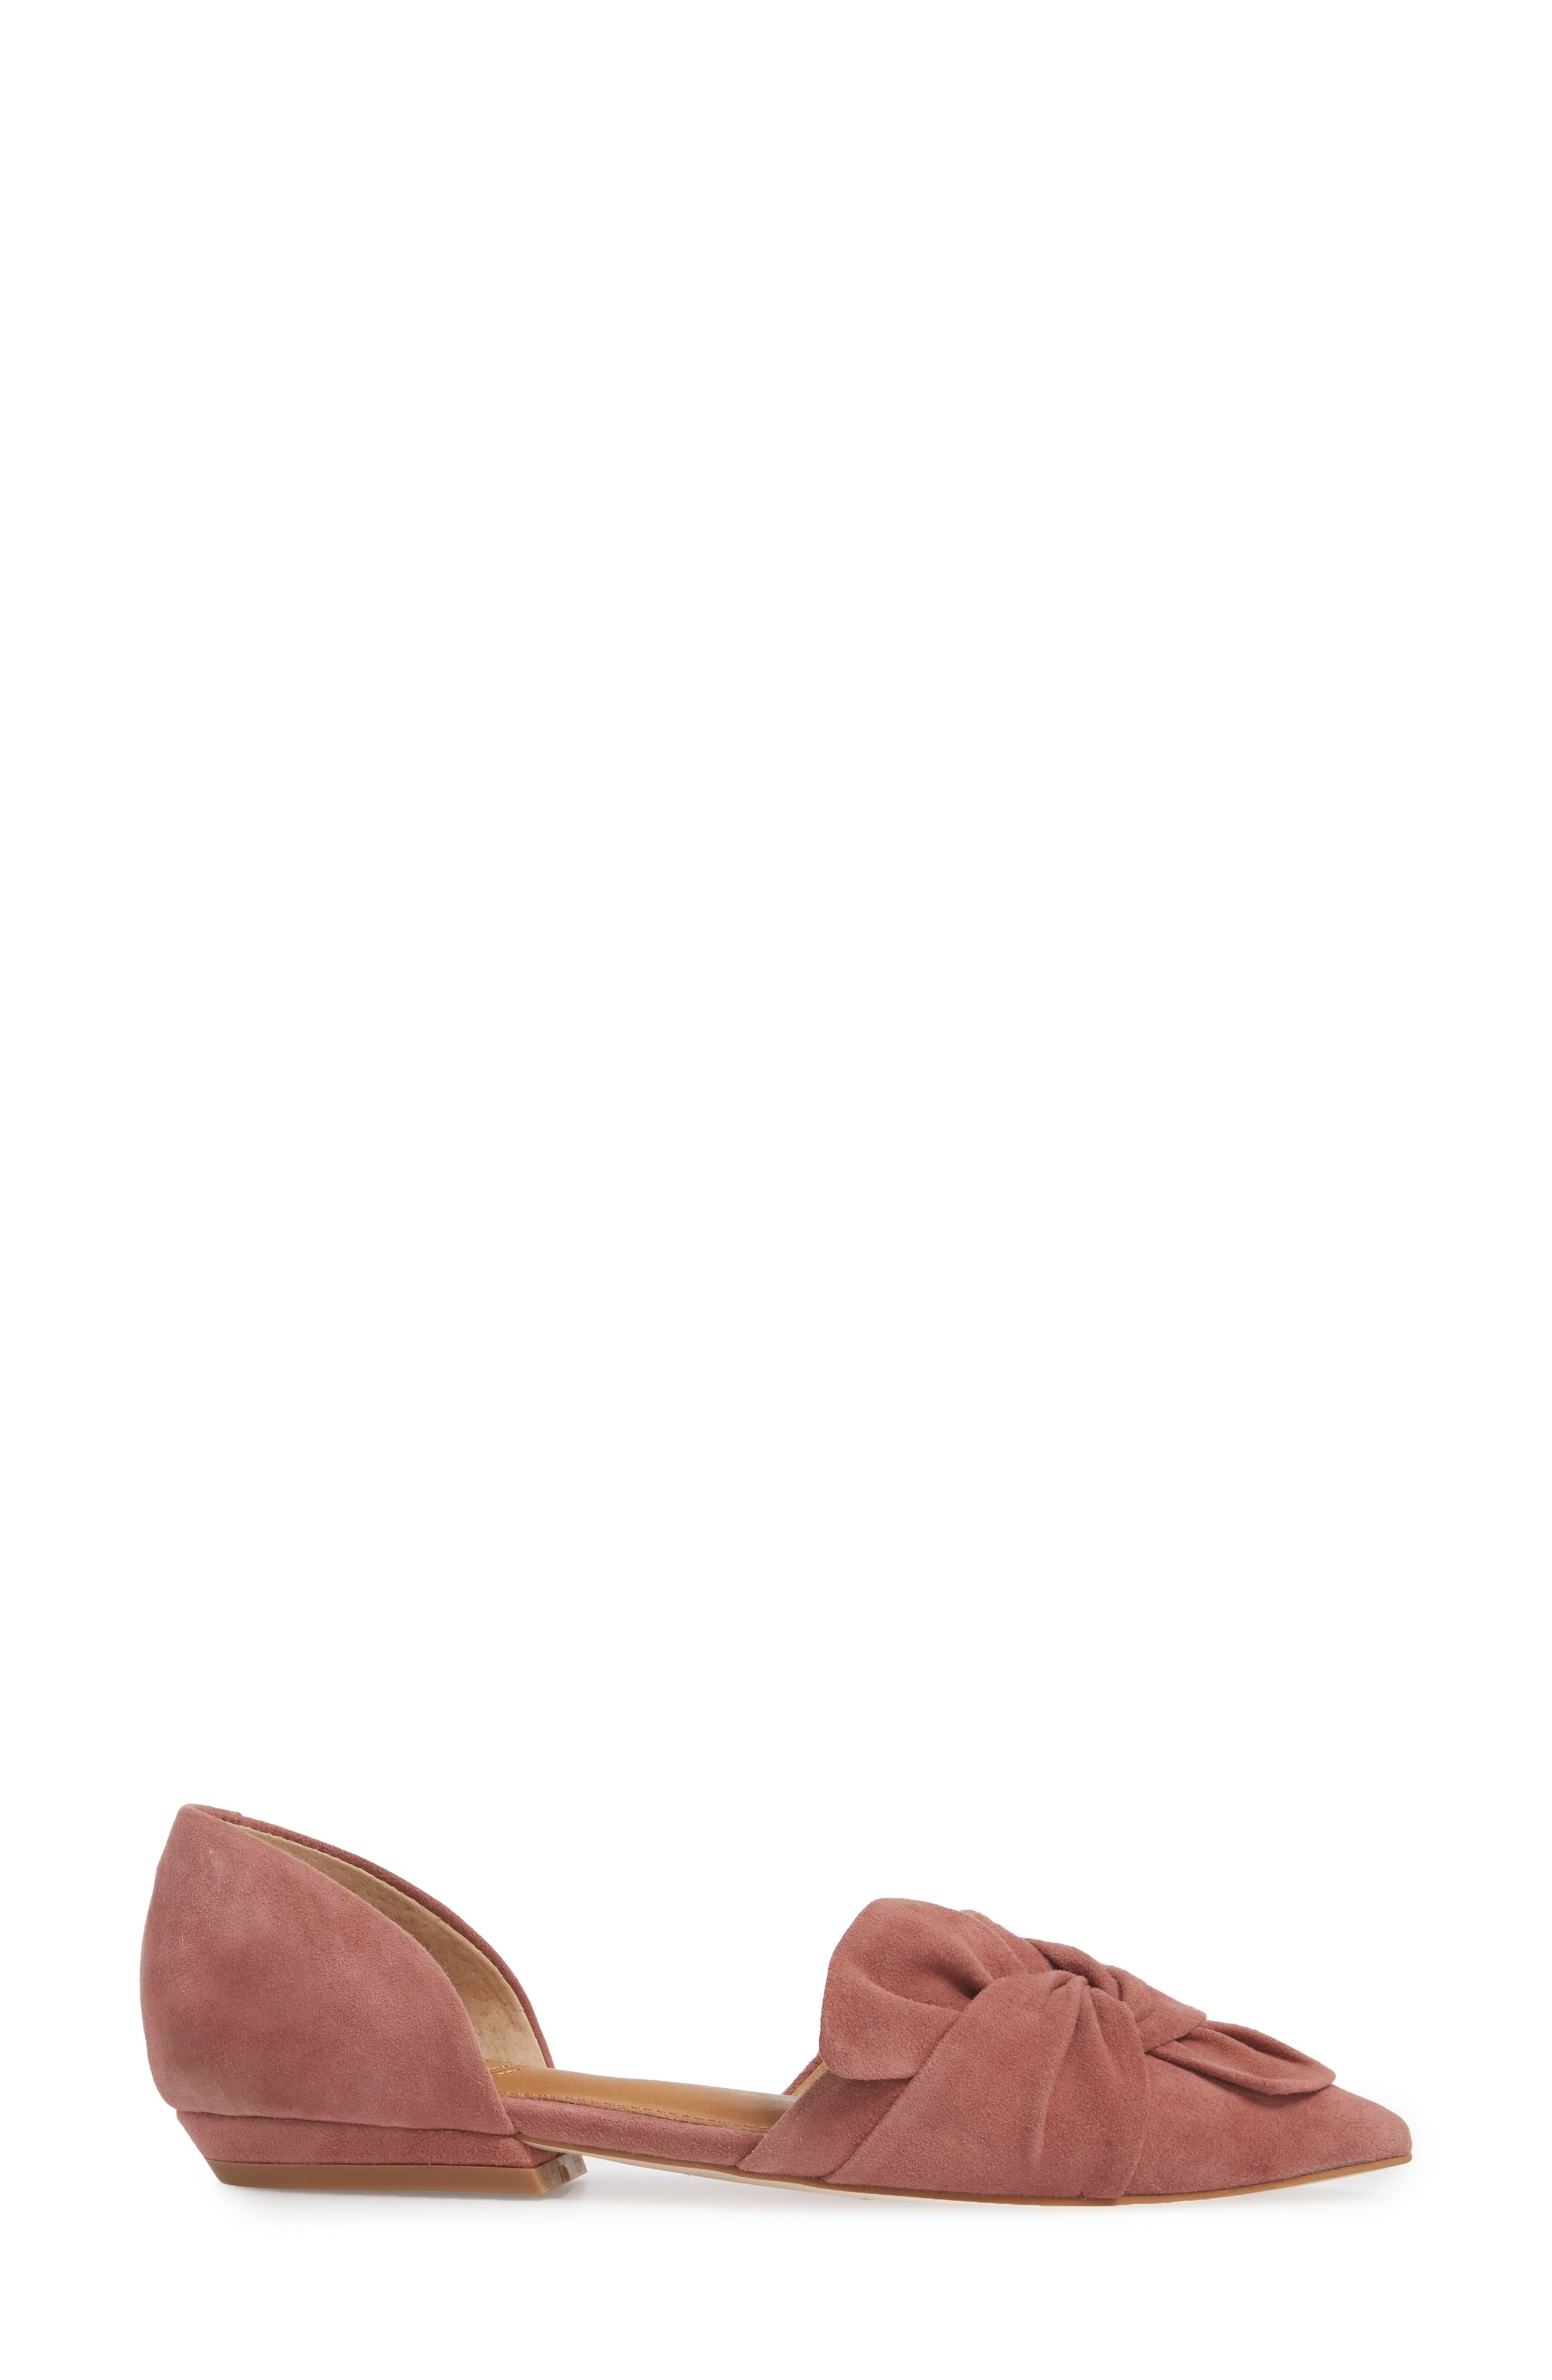 Mollie d'Orsay Flat,                             Alternate thumbnail 3, color,                             OLD ROSE SUEDE